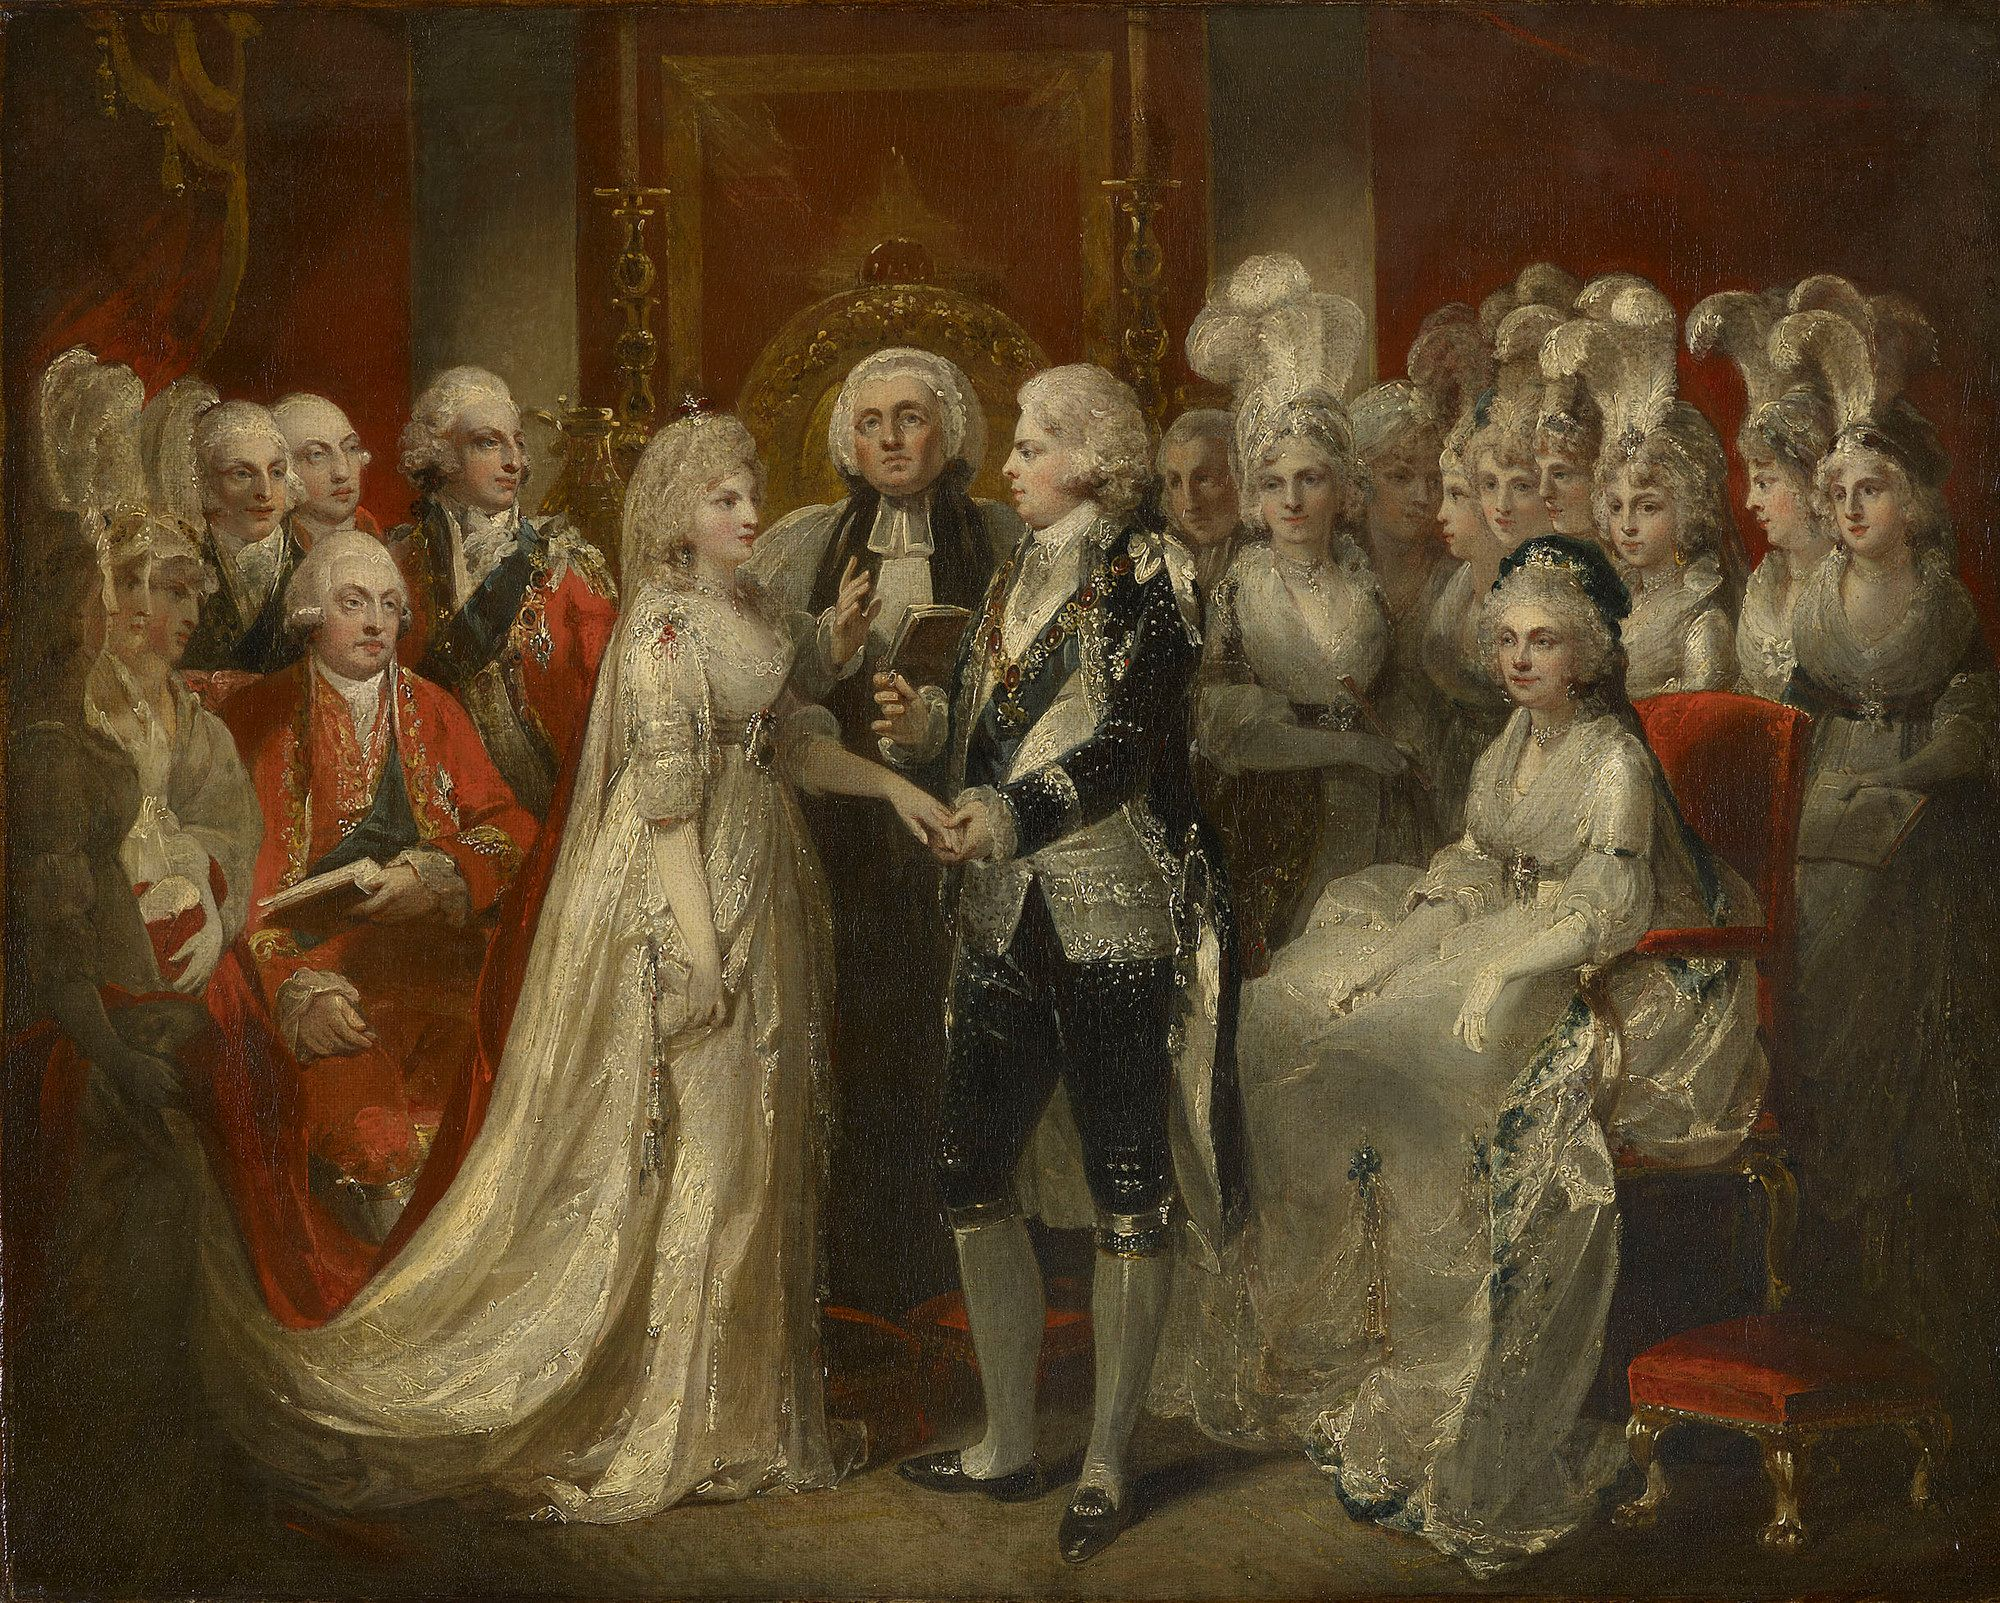 King George IV at his wedding